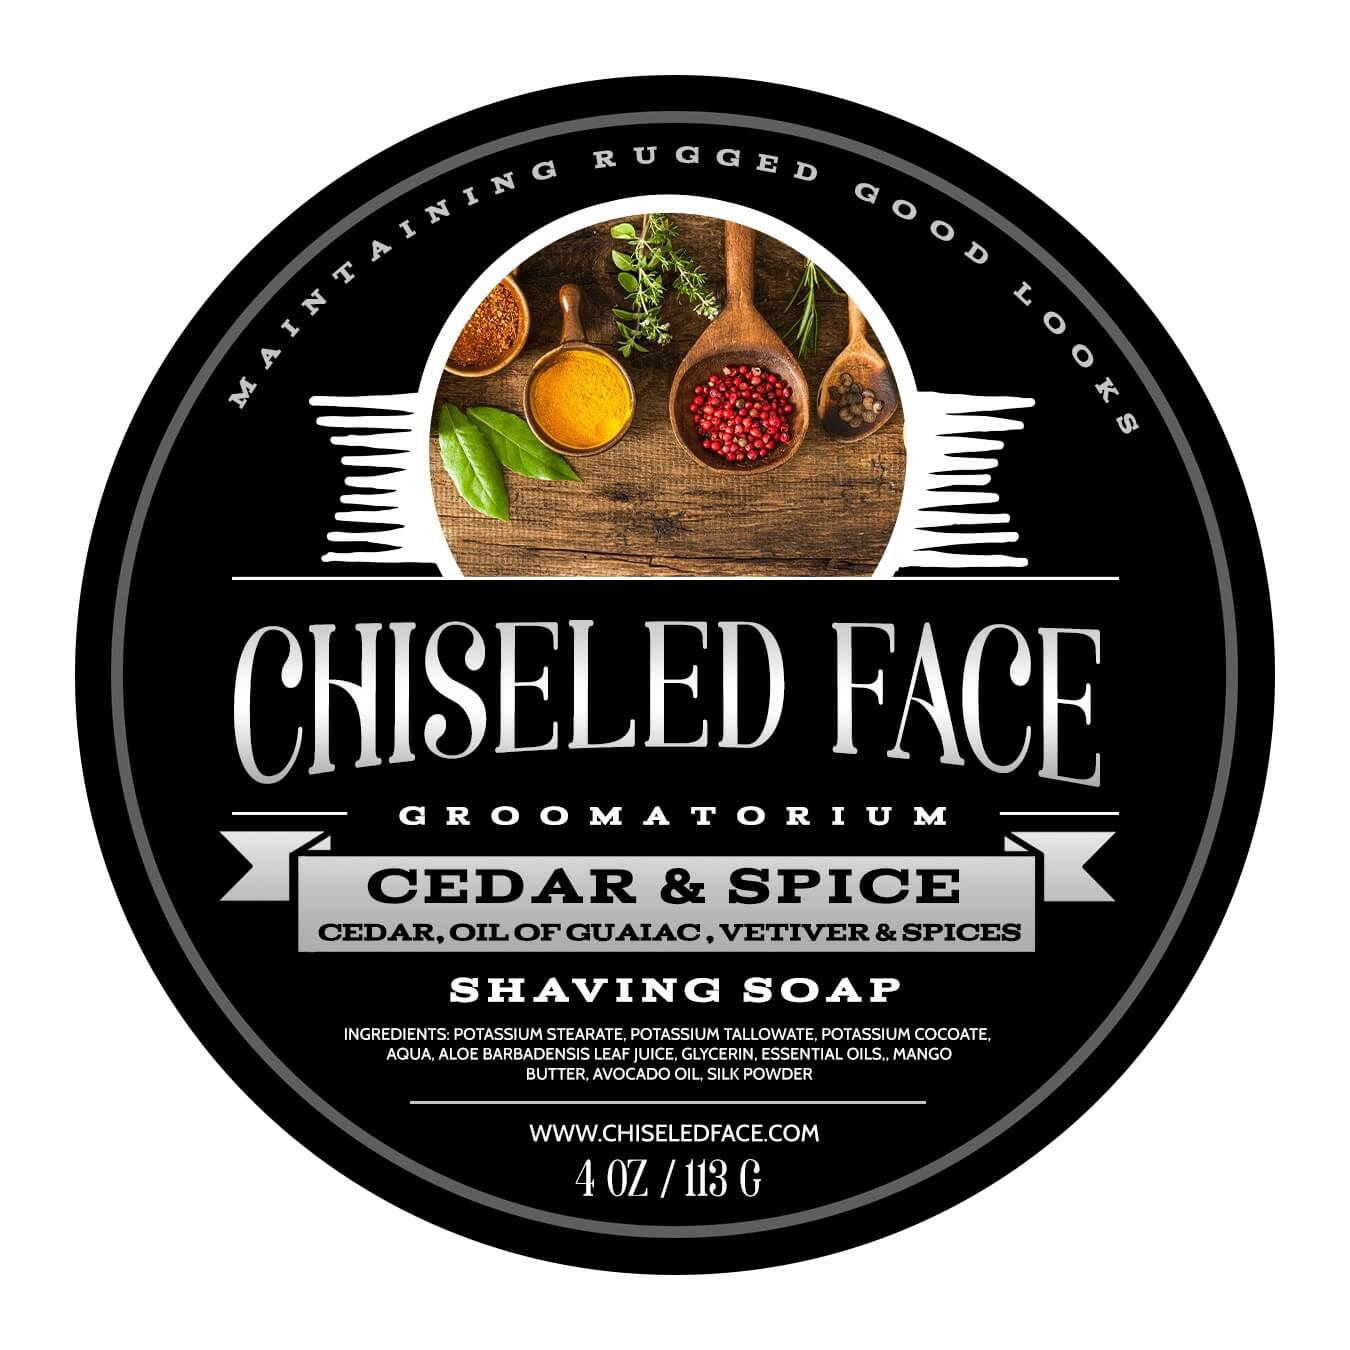 Chiseled Face - Cedar & Spice - Soap image